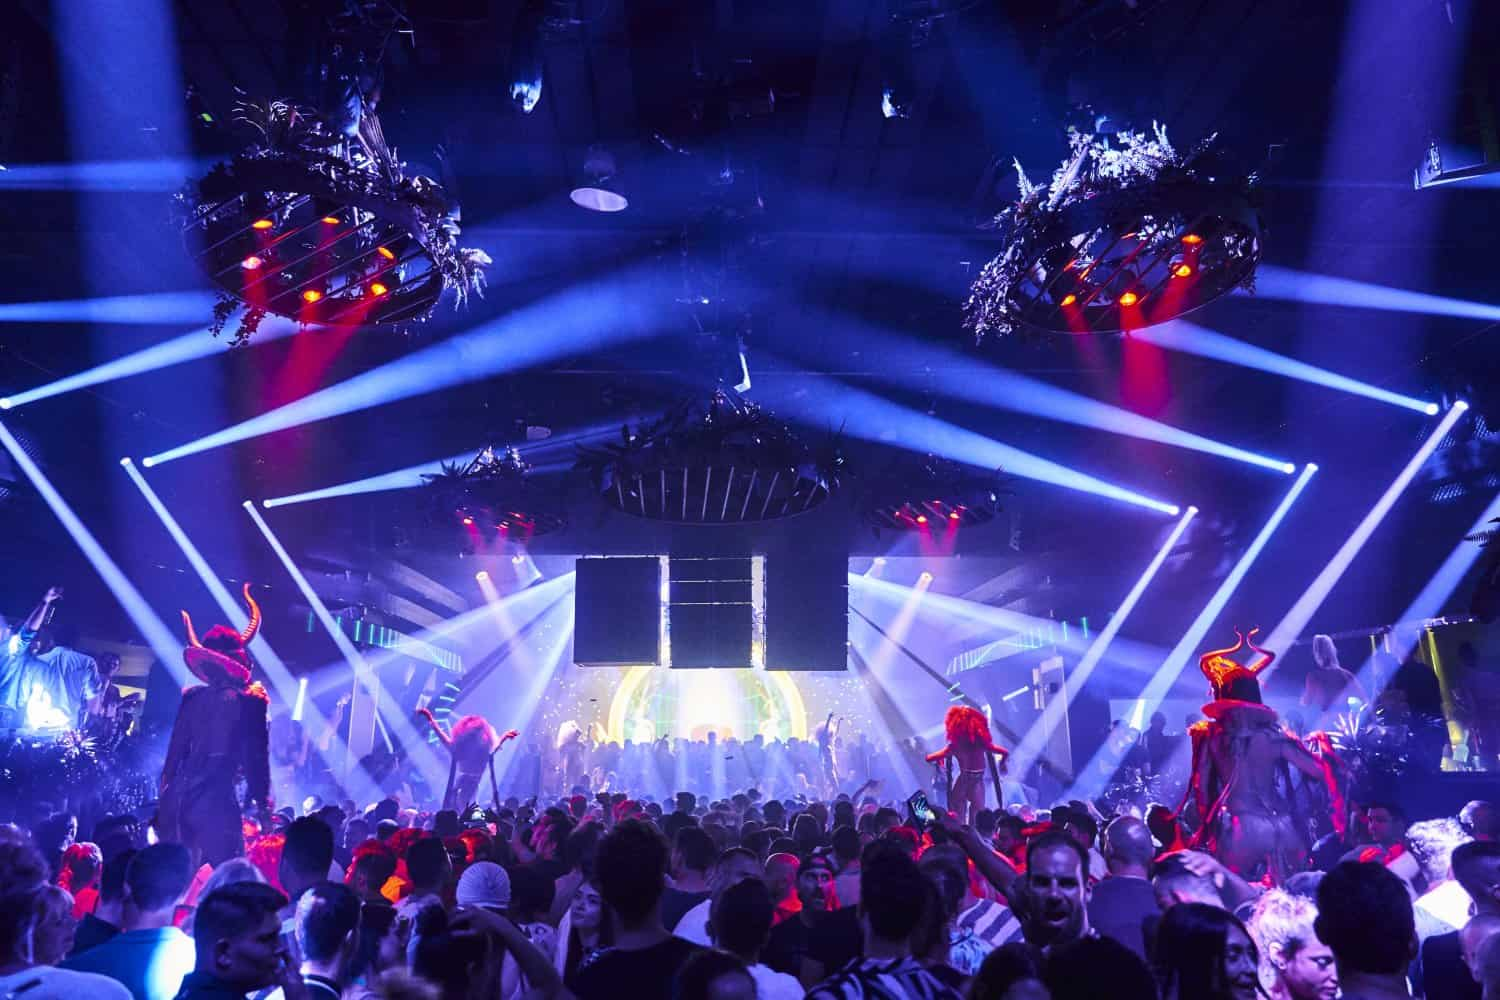 BODYWORKS Ibiza 2019 - Tickets, Events and Lineup 6